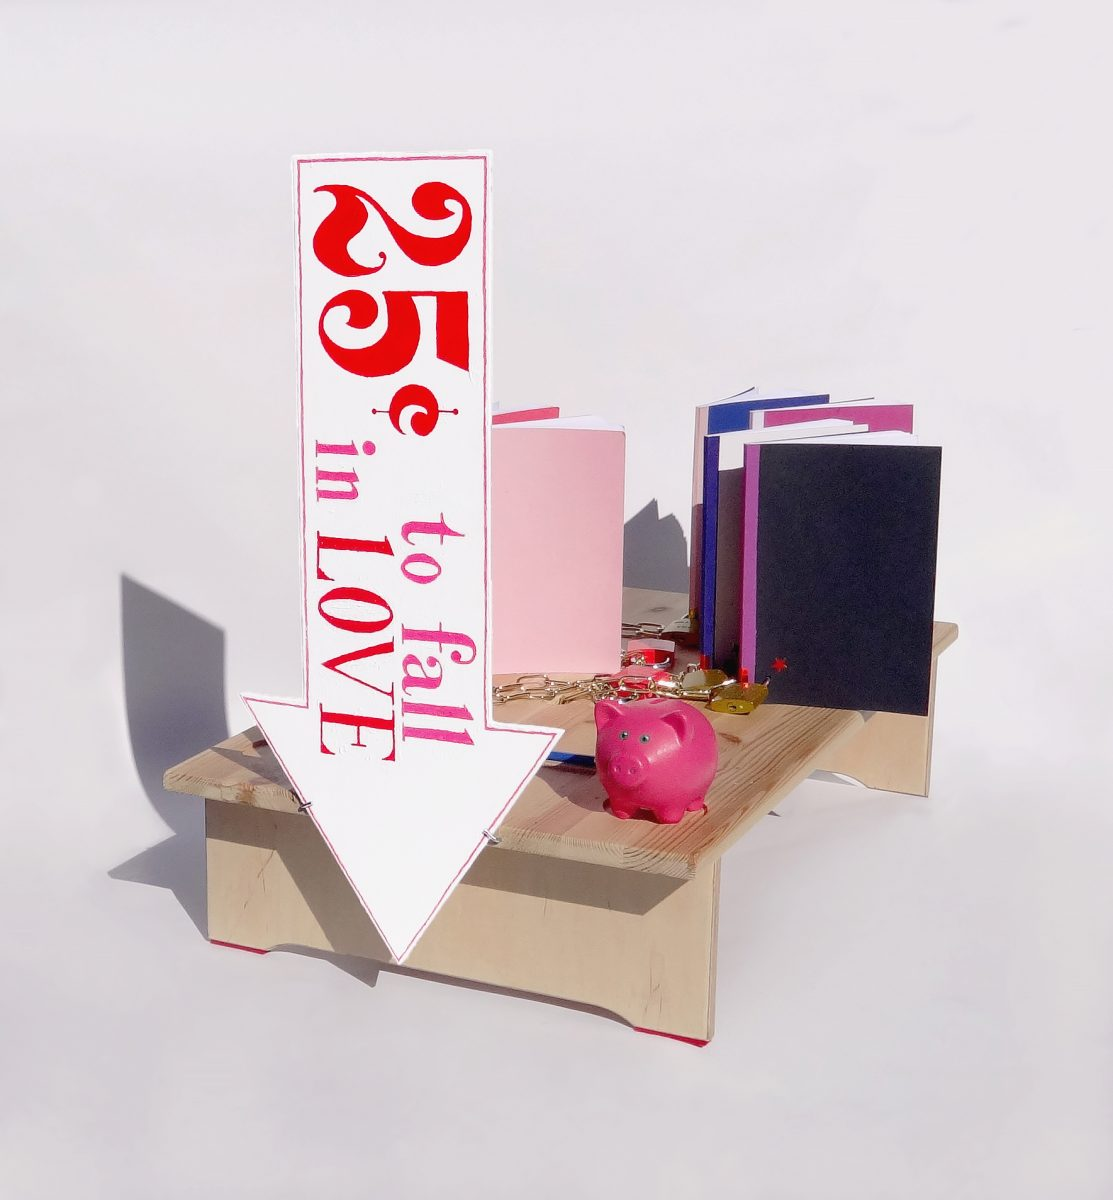 25 Cents to Fall in Love 2018 - Ongoing / Performance, installation + object: Wood, engraved steel locks, handmade books, brass-covered steel chains, piggy bank, felt, acrylic paint, candy